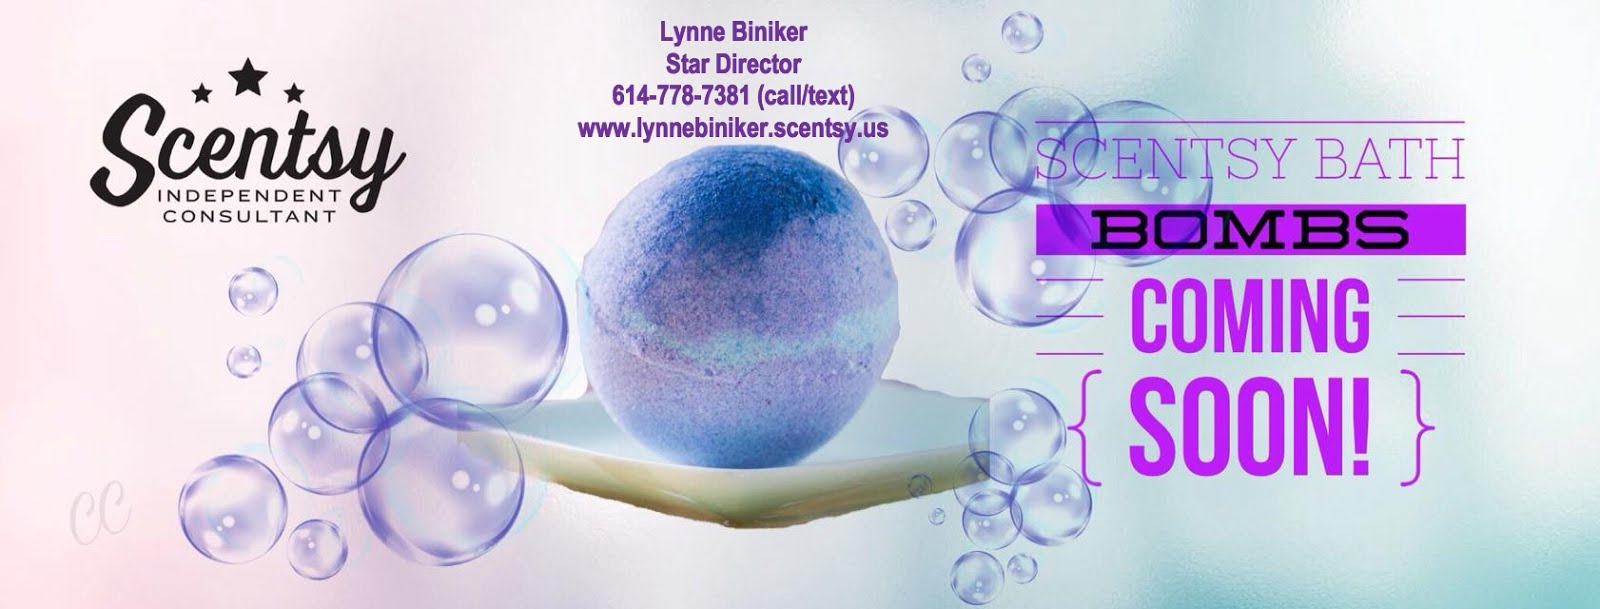 Lynne Biniker ~ Independent Scentsy Consultant